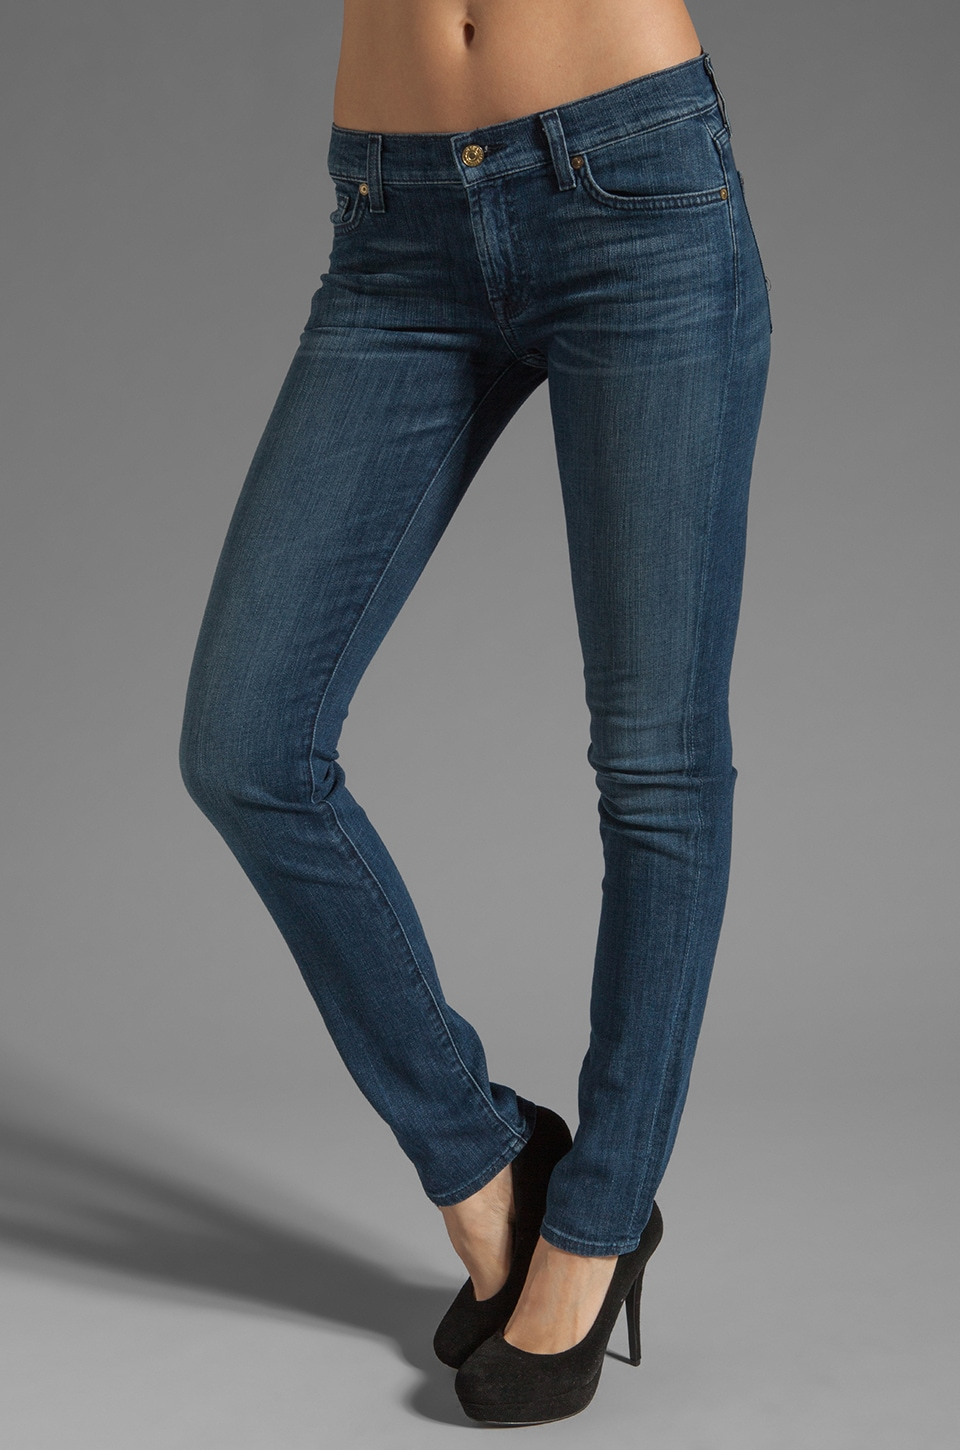 7 For All Mankind Roxanne in Radiant Shining Star